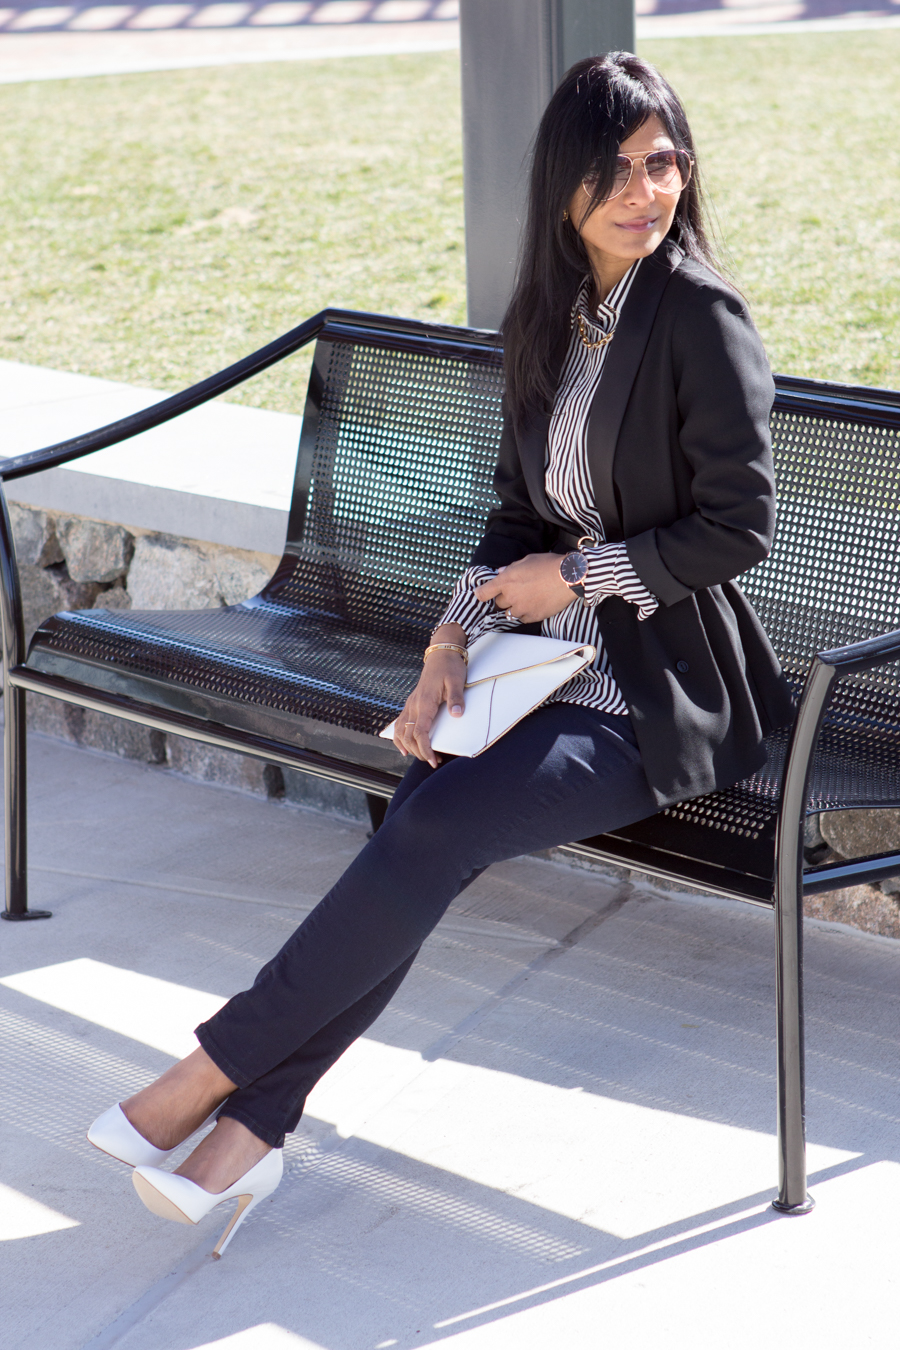 workwear, work style, office style, career style, dress with confidence, look powerful, dress for the job you want, black blazer, slouchy blazer, belted blazer, petite blazer, aviator, skinny jeans, black and white, button-down, striped button-down, white bag, white shoes, professional, working woman, girl boss